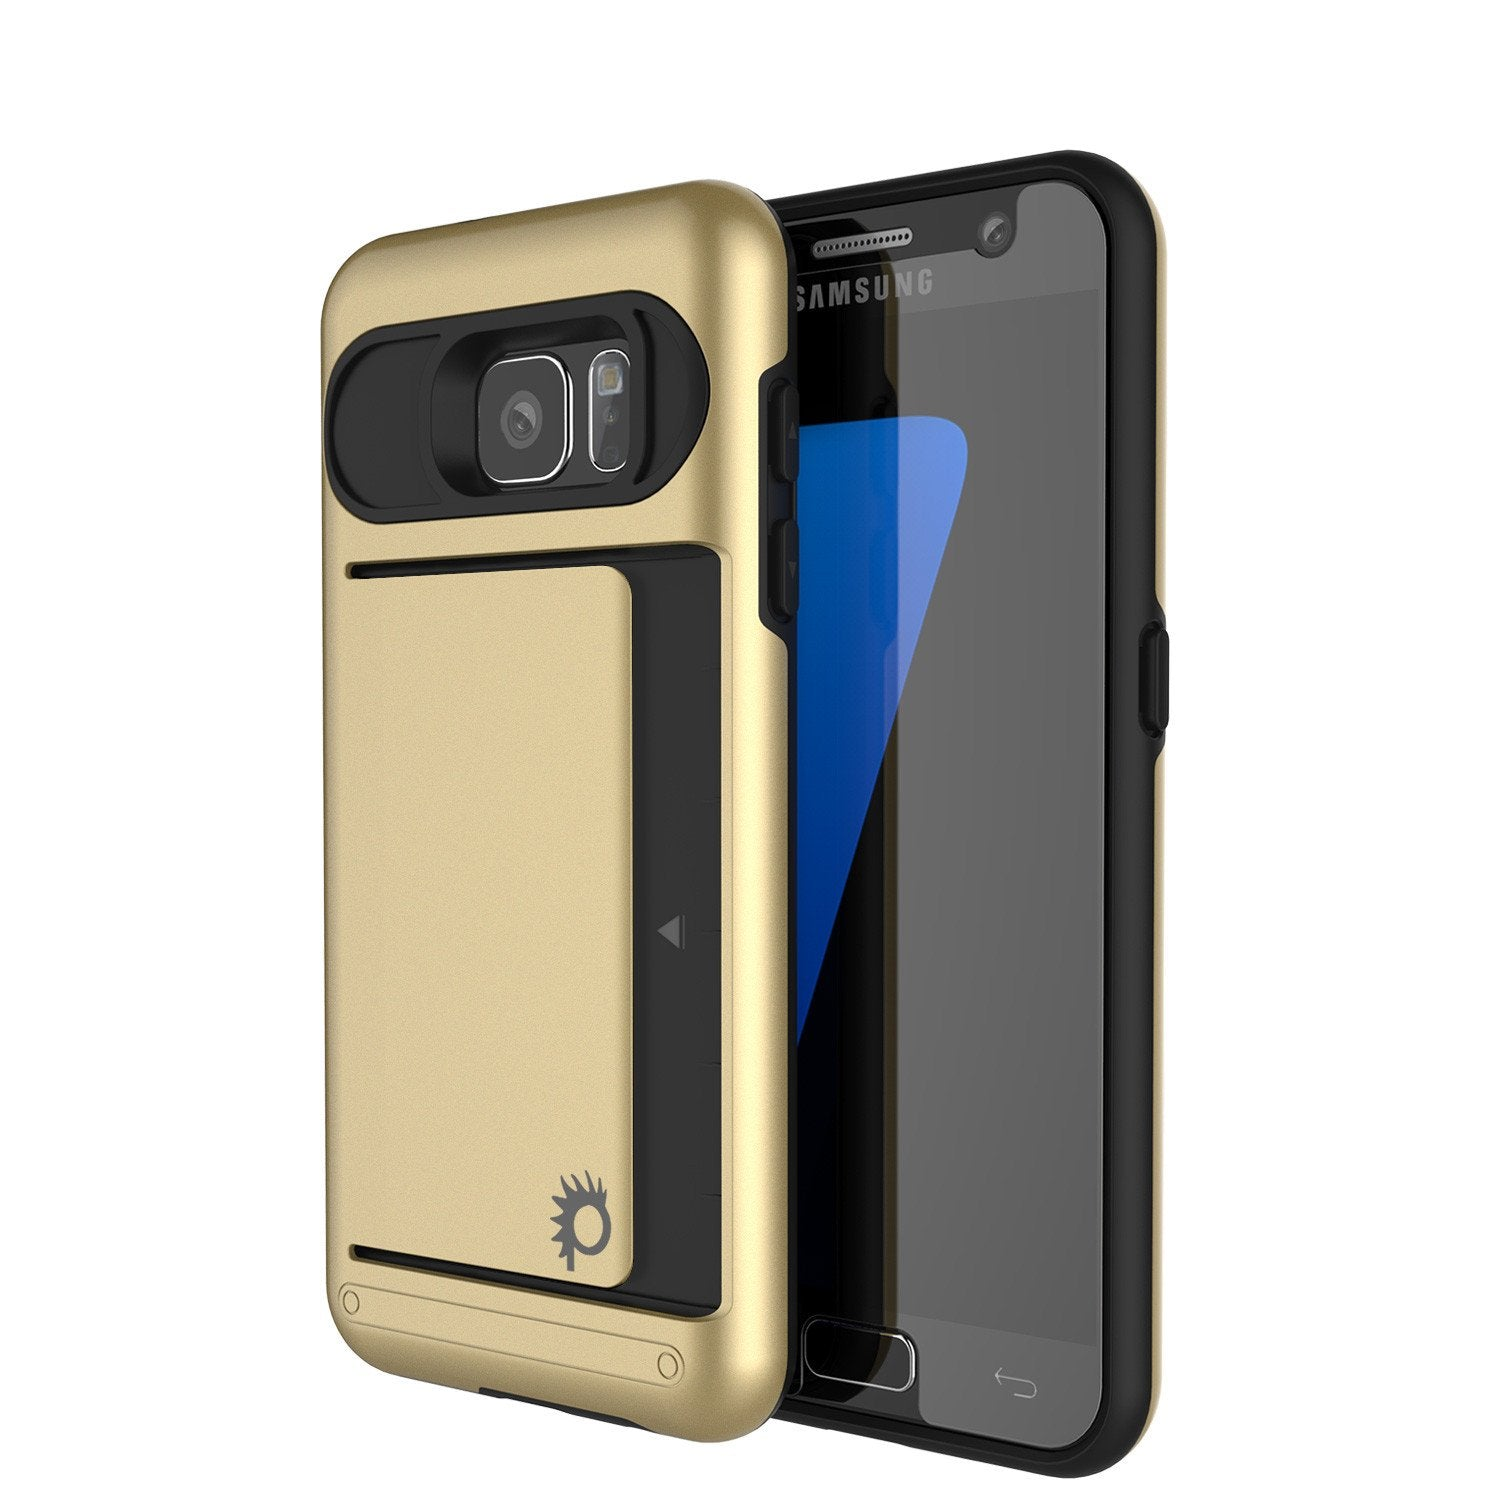 Galaxy S7 EDGE Case PunkCase CLUTCH Gold Series Slim Armor Soft Cover Case w/ Screen Protector - PunkCase NZ